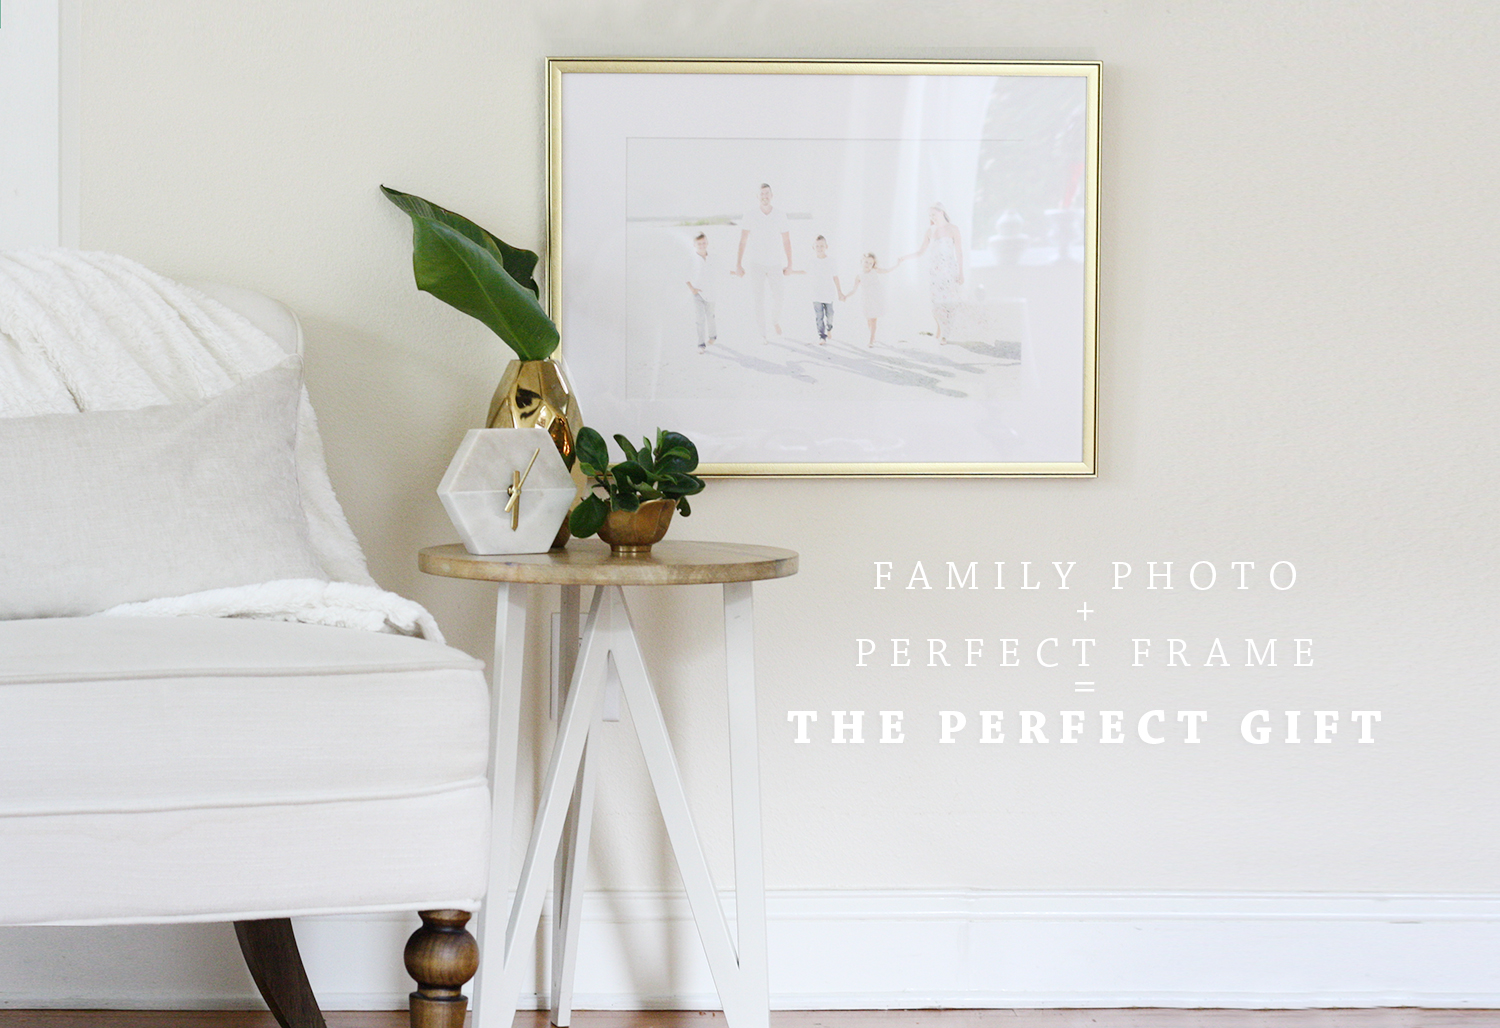 Framebridge Gold Frame + Family Photo + The Perfect Gift